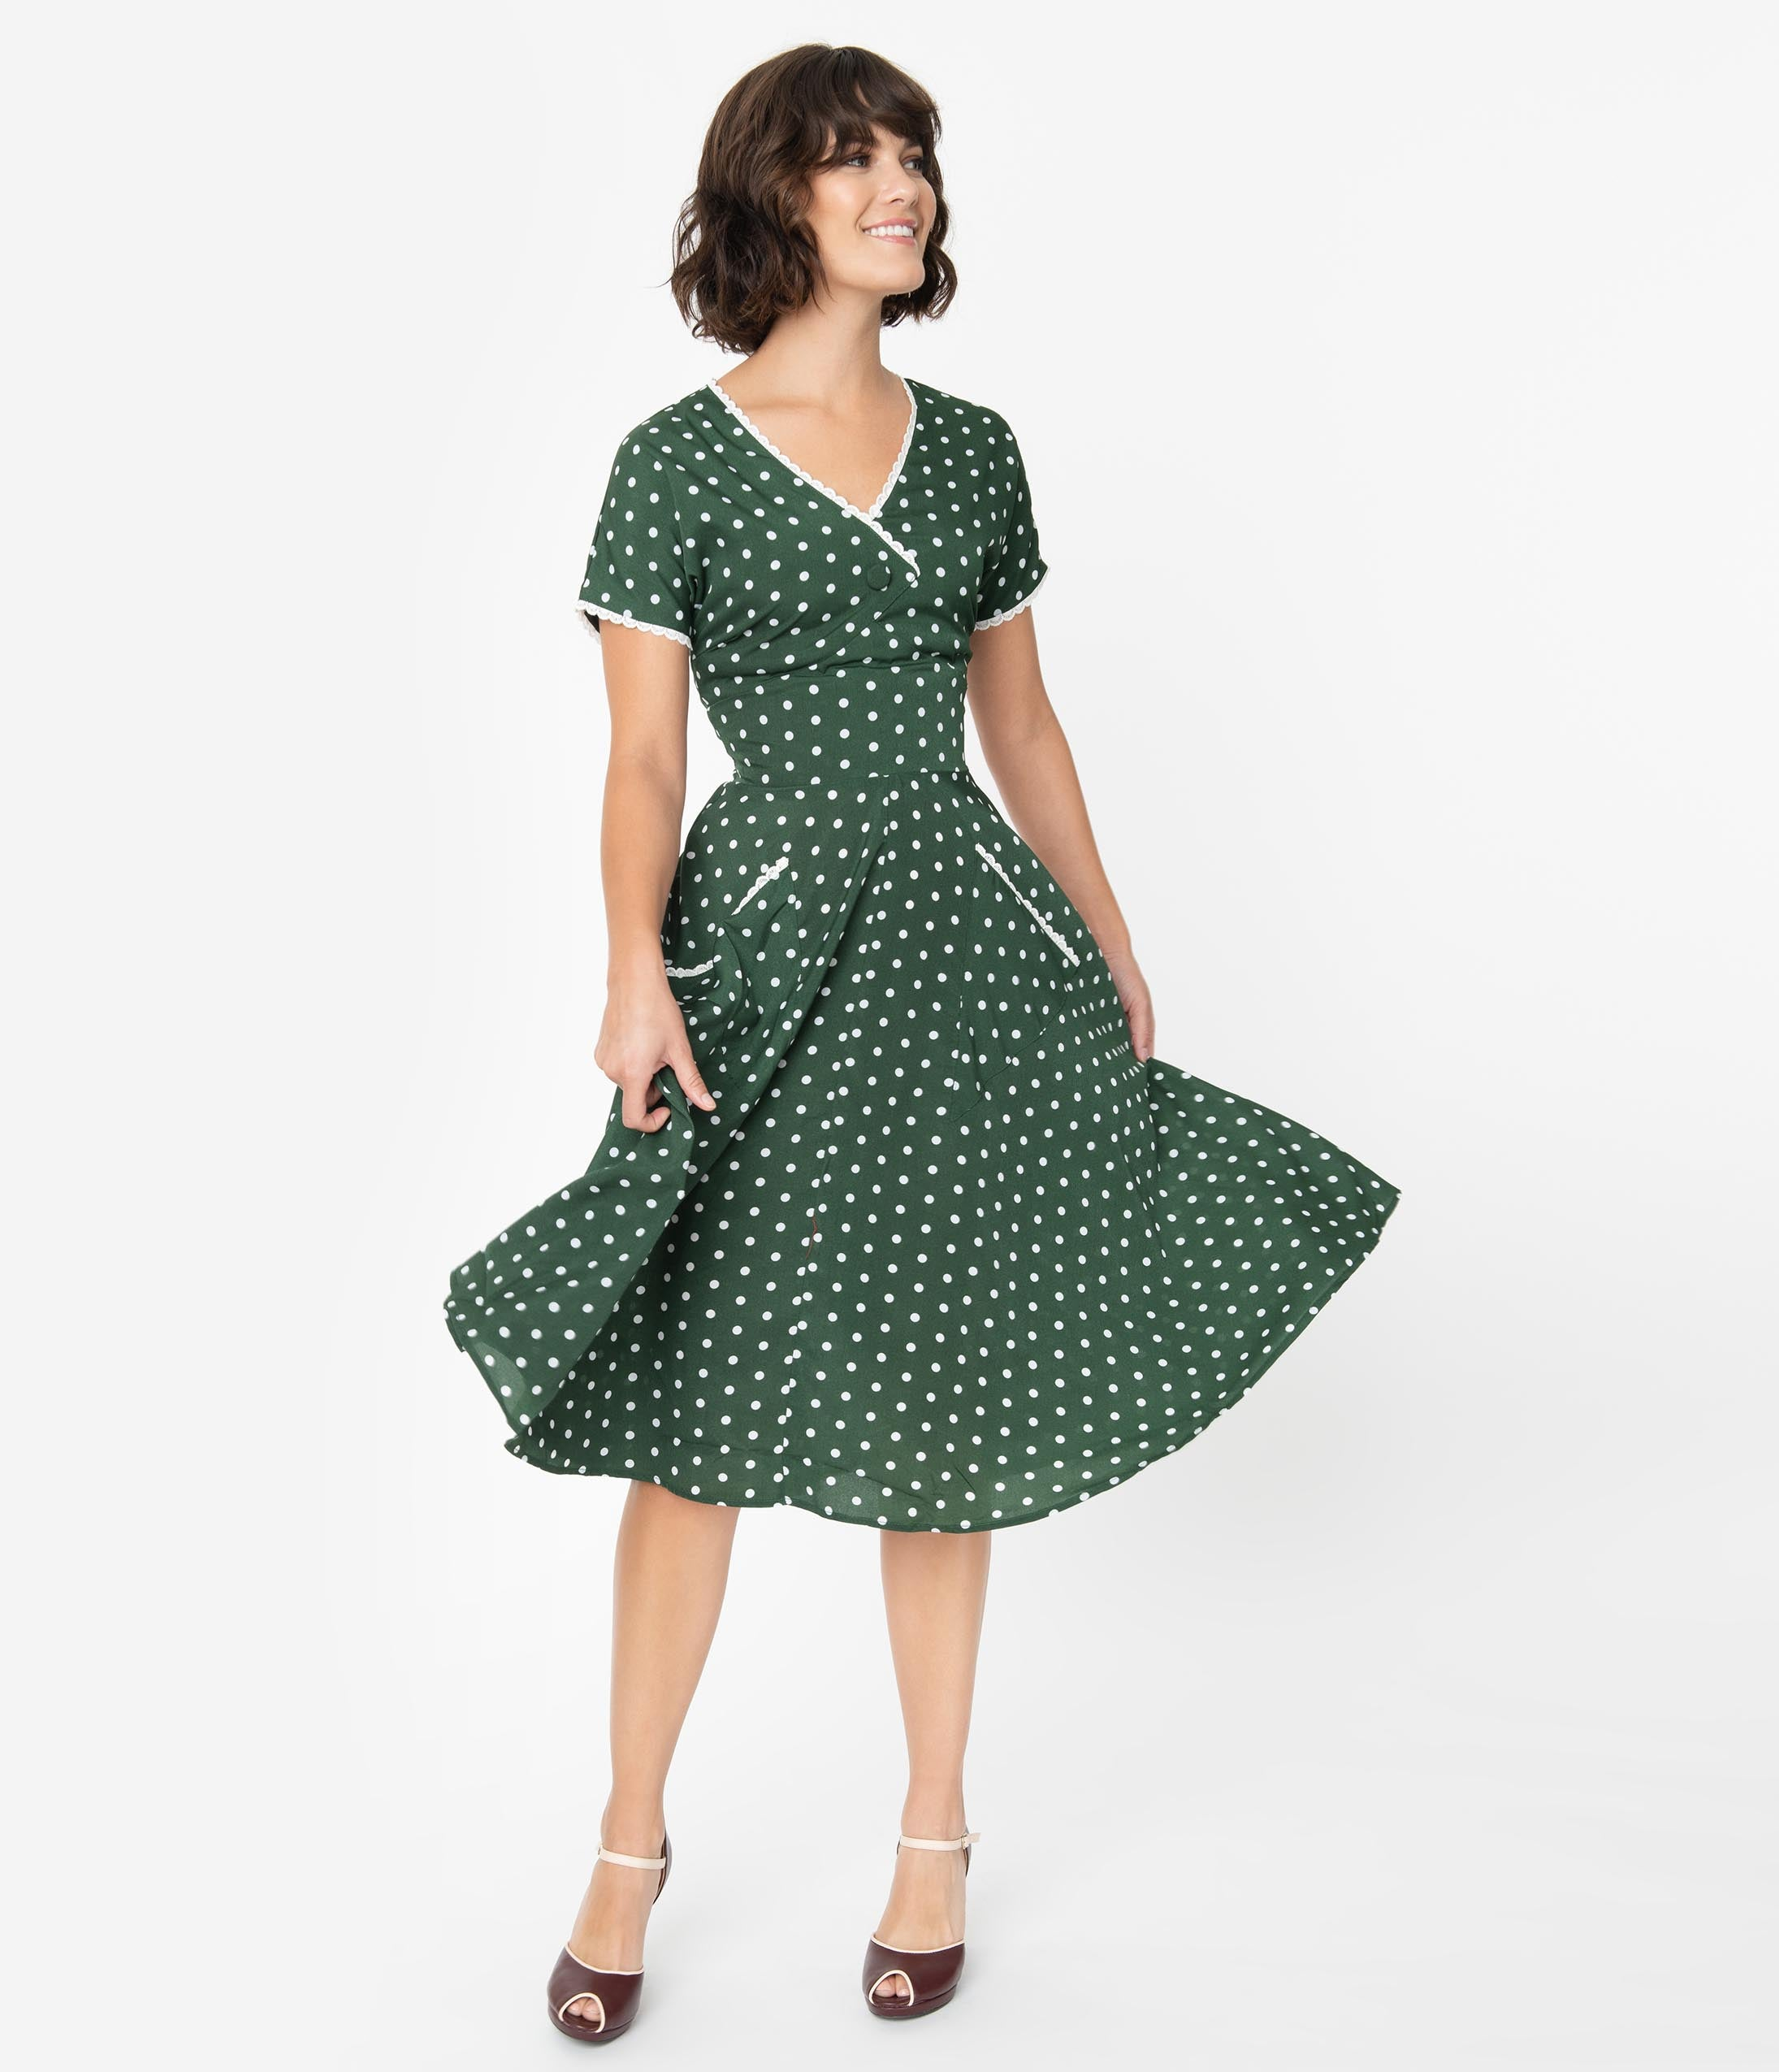 Rockabilly Dresses | Rockabilly Clothing | Viva Las Vegas Unique Vintage 1950S Dark Green  White Polka Dot Goldie Swing Dress $78.00 AT vintagedancer.com